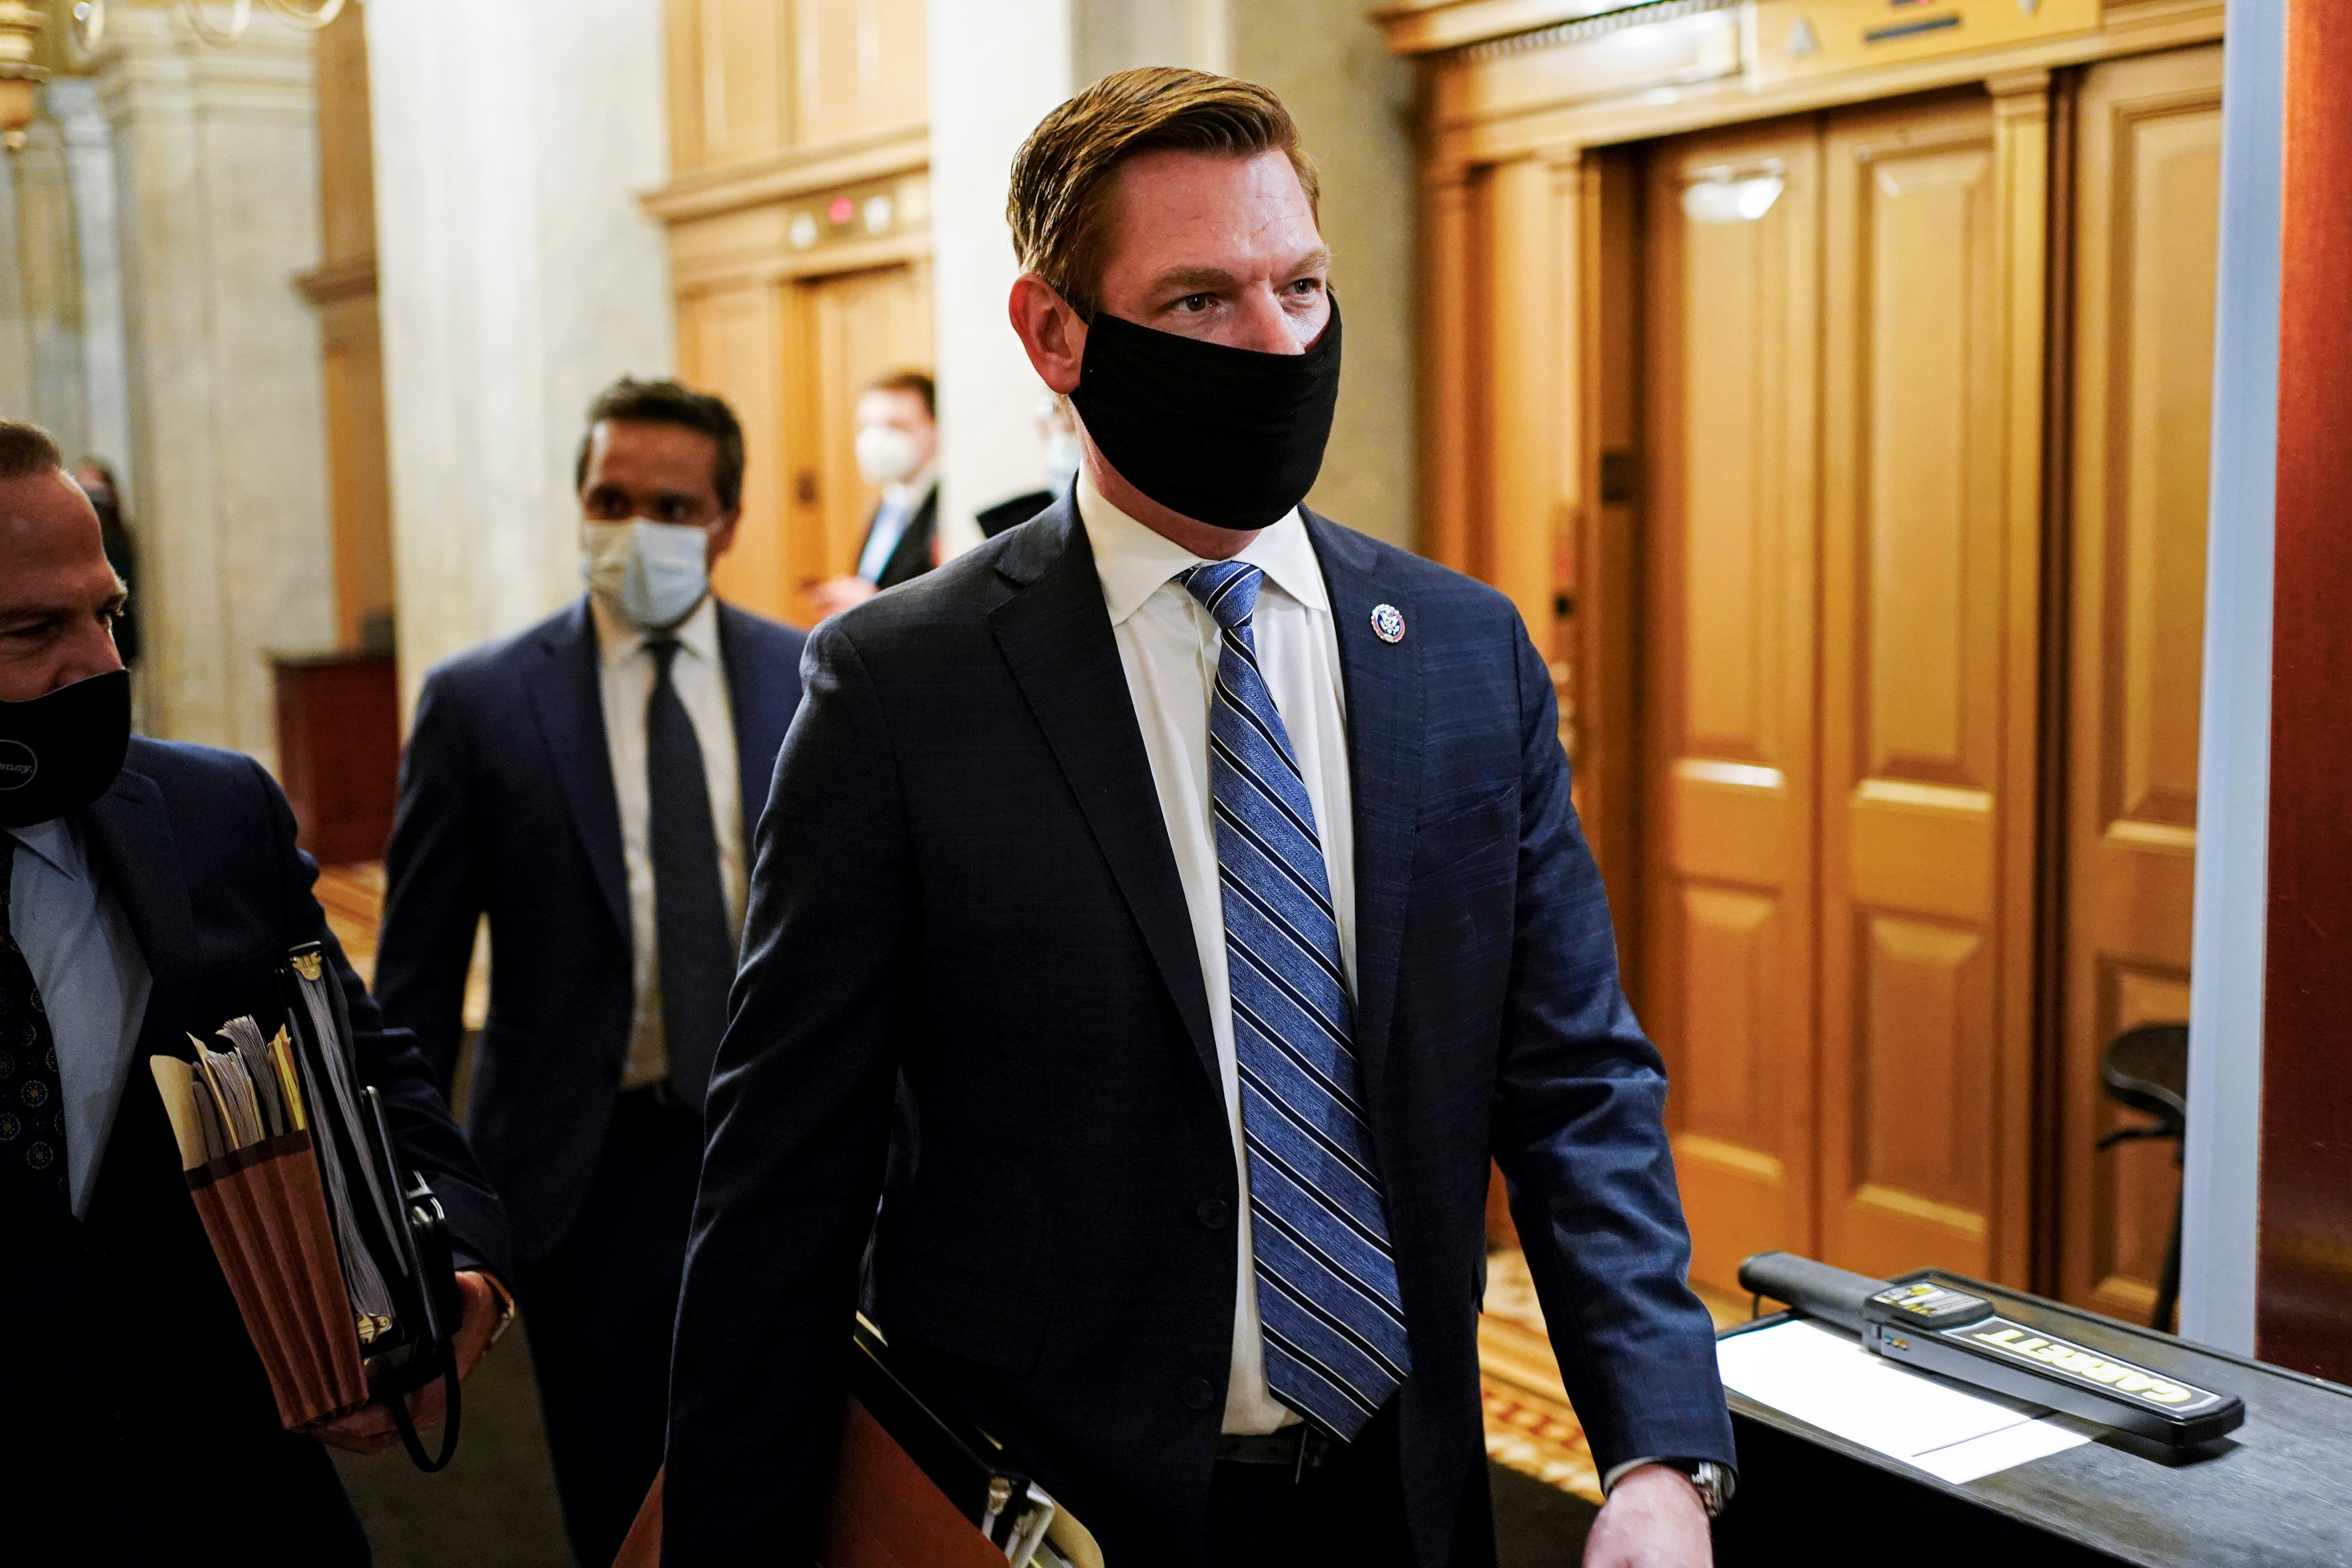 House Impeachment Manager Rep. Eric Swalwell (D-CA) departs after the day's proceedings concluded in the impeachment trial of former U.S. President Donald Trump, on charges of inciting the deadly attack on the U.S. Capitol, on Capitol Hill in Washington, U.S., February 10, 2021. REUTERS/Joshua Roberts/Pool